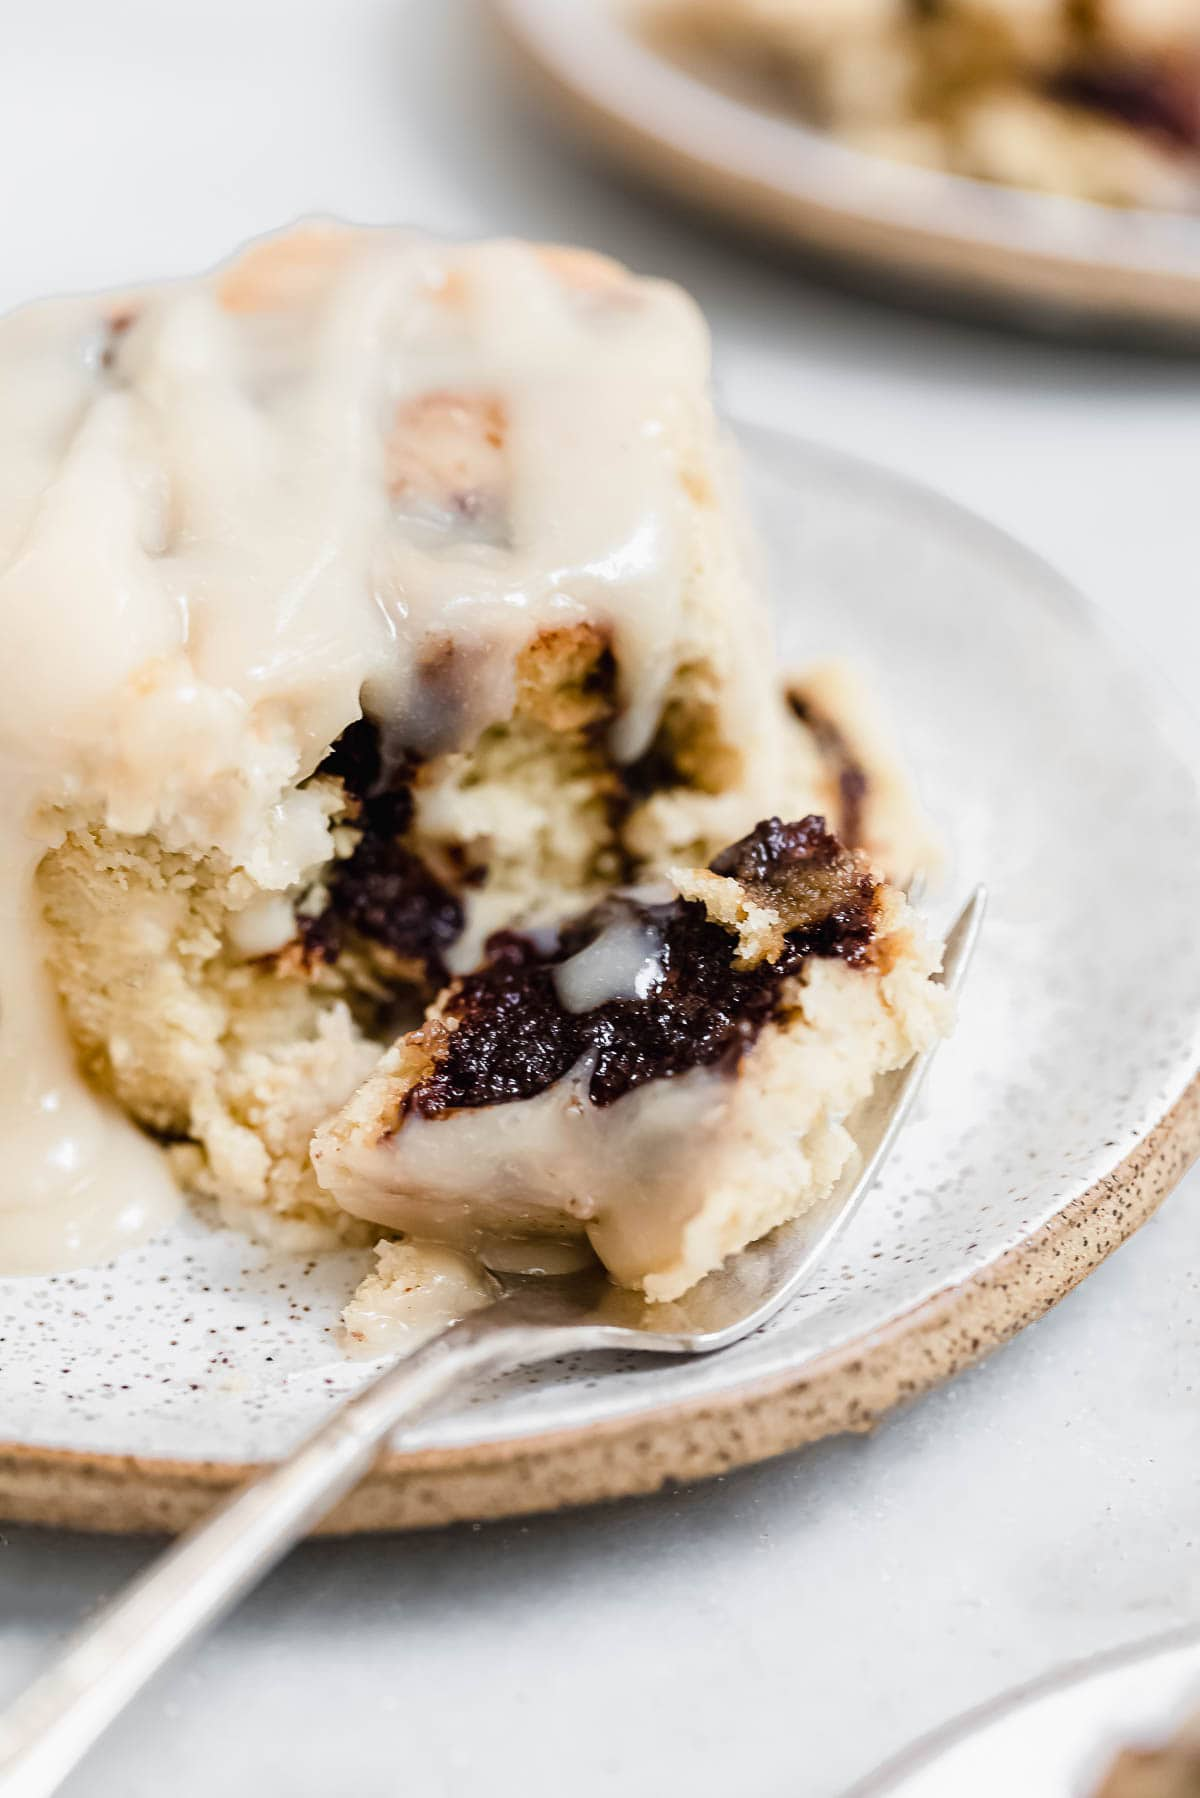 Up close image of the gluten free vegan cinnamon roll with a fork.